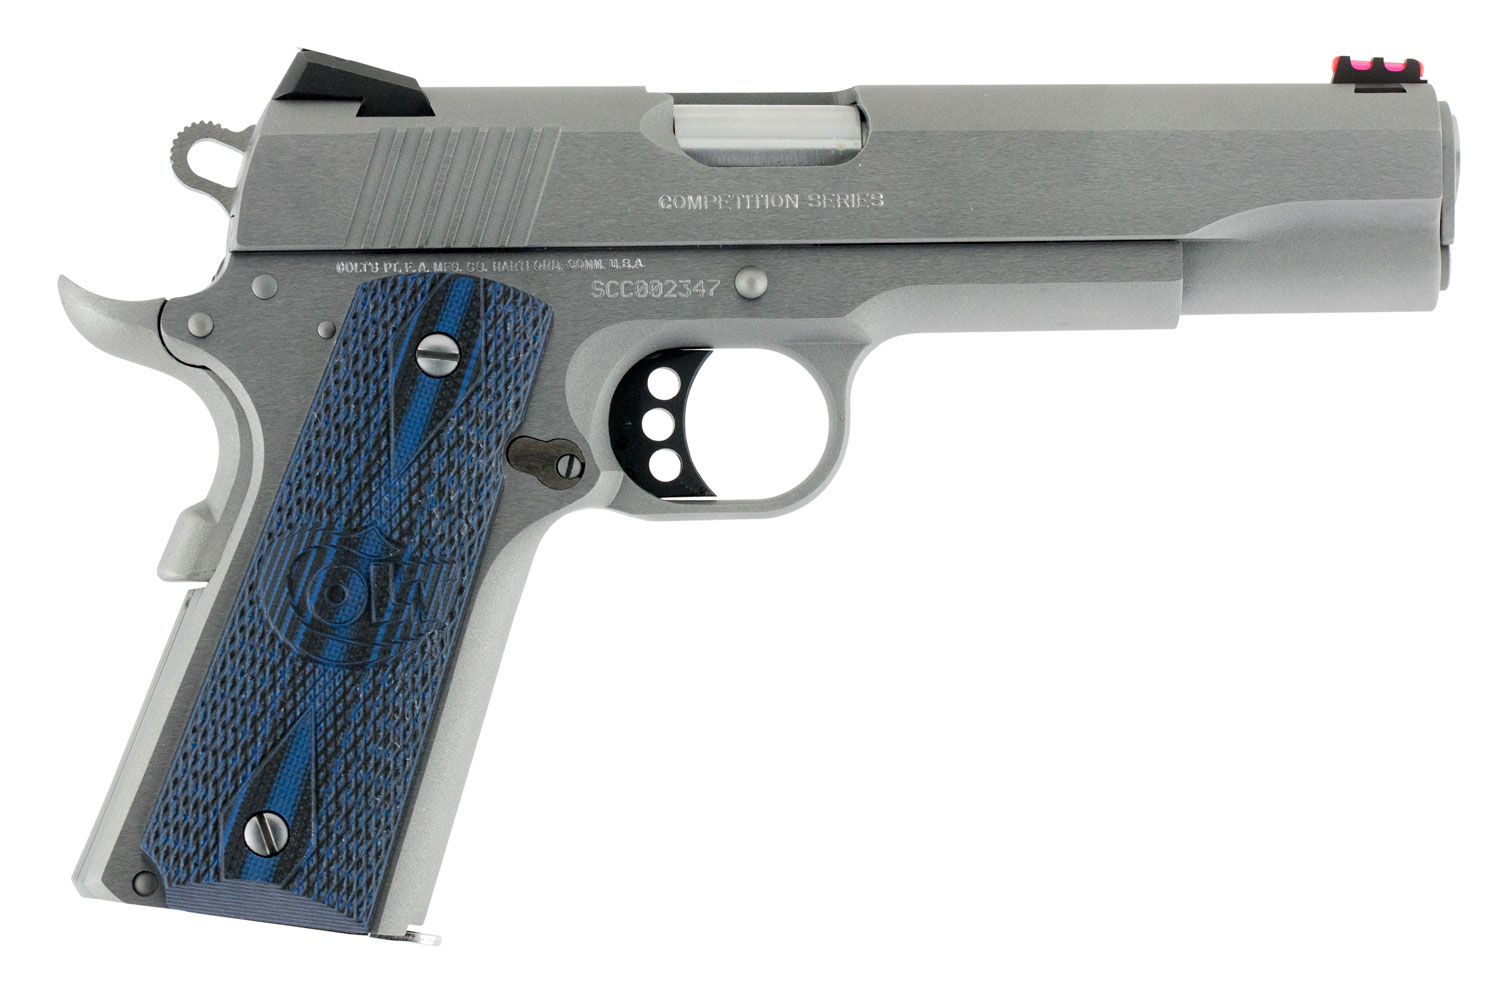 COMPETITION SER70 45ACP SS 8+1 - SERIES 70 COMPETITION